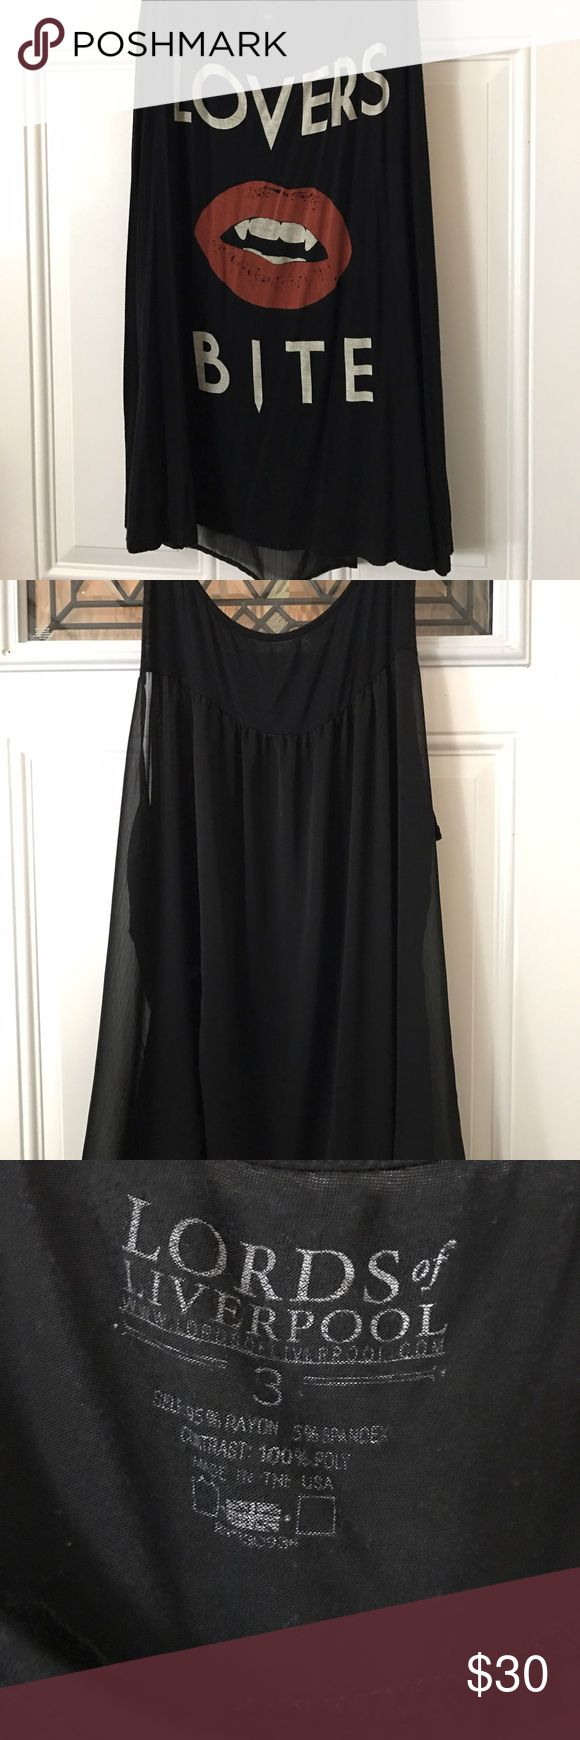 """Black Tang Top Black High Low Tang Top. Says """"Lover's Bite"""". Size 3 from Torrid. Solid Front with Sheer Back. Hits below hip on me, I'm 5'3"""". Lightly warn. No tears or stains. torrid Tops Tank Tops"""